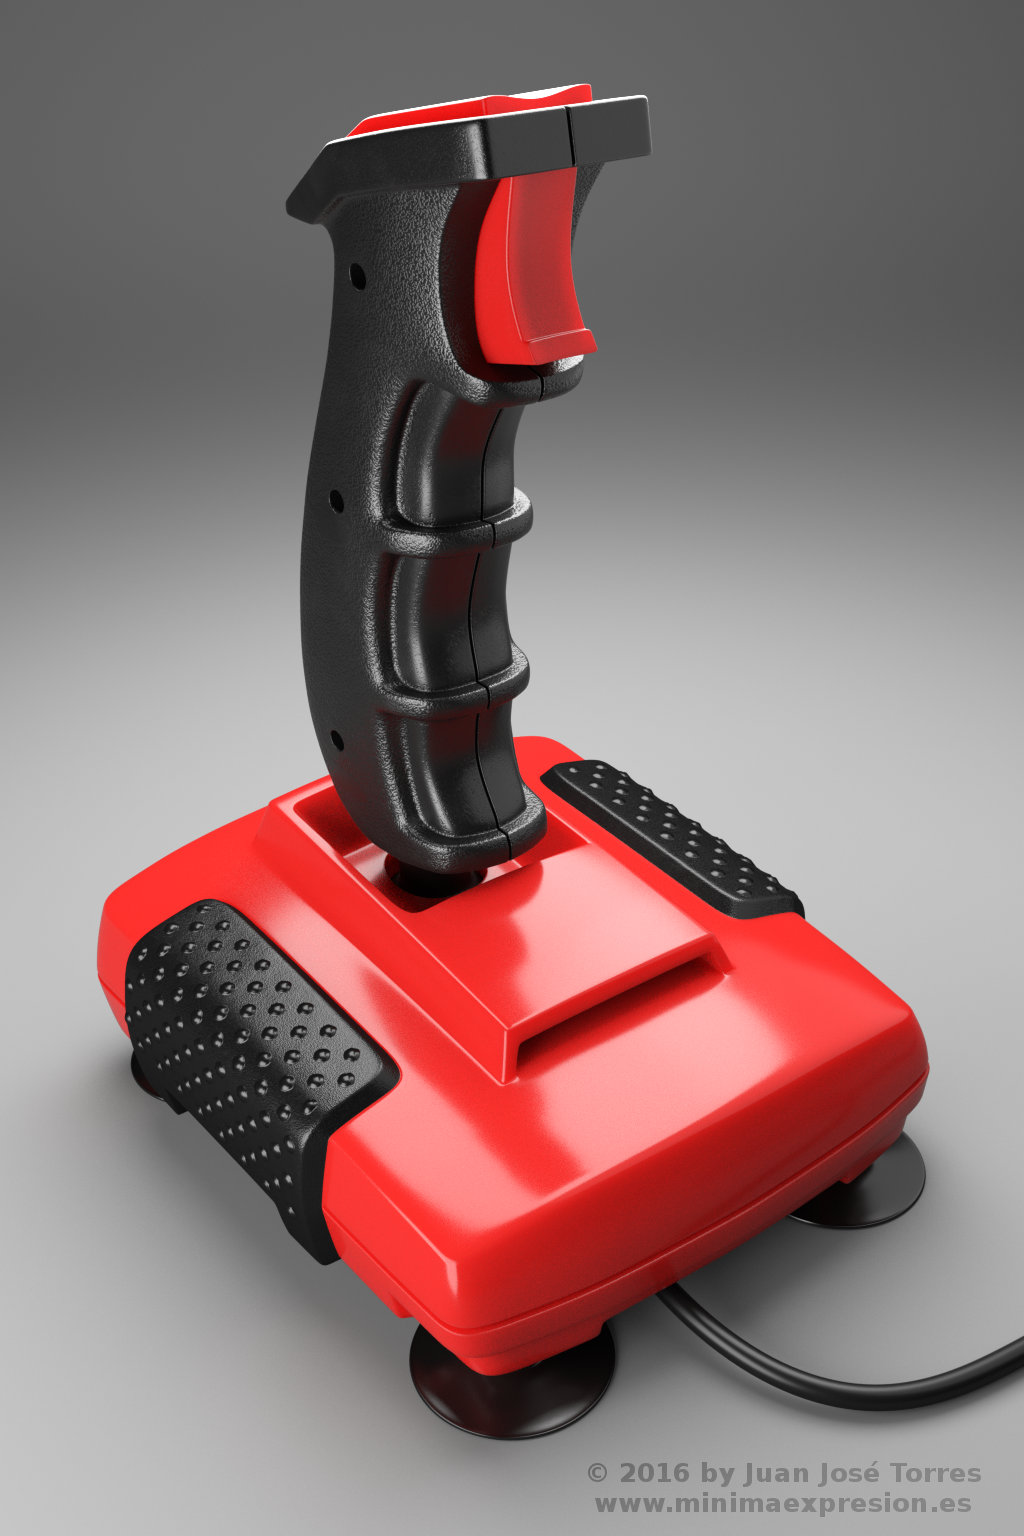 Retro Joystick - Quickshot II Turbo (November 2016)